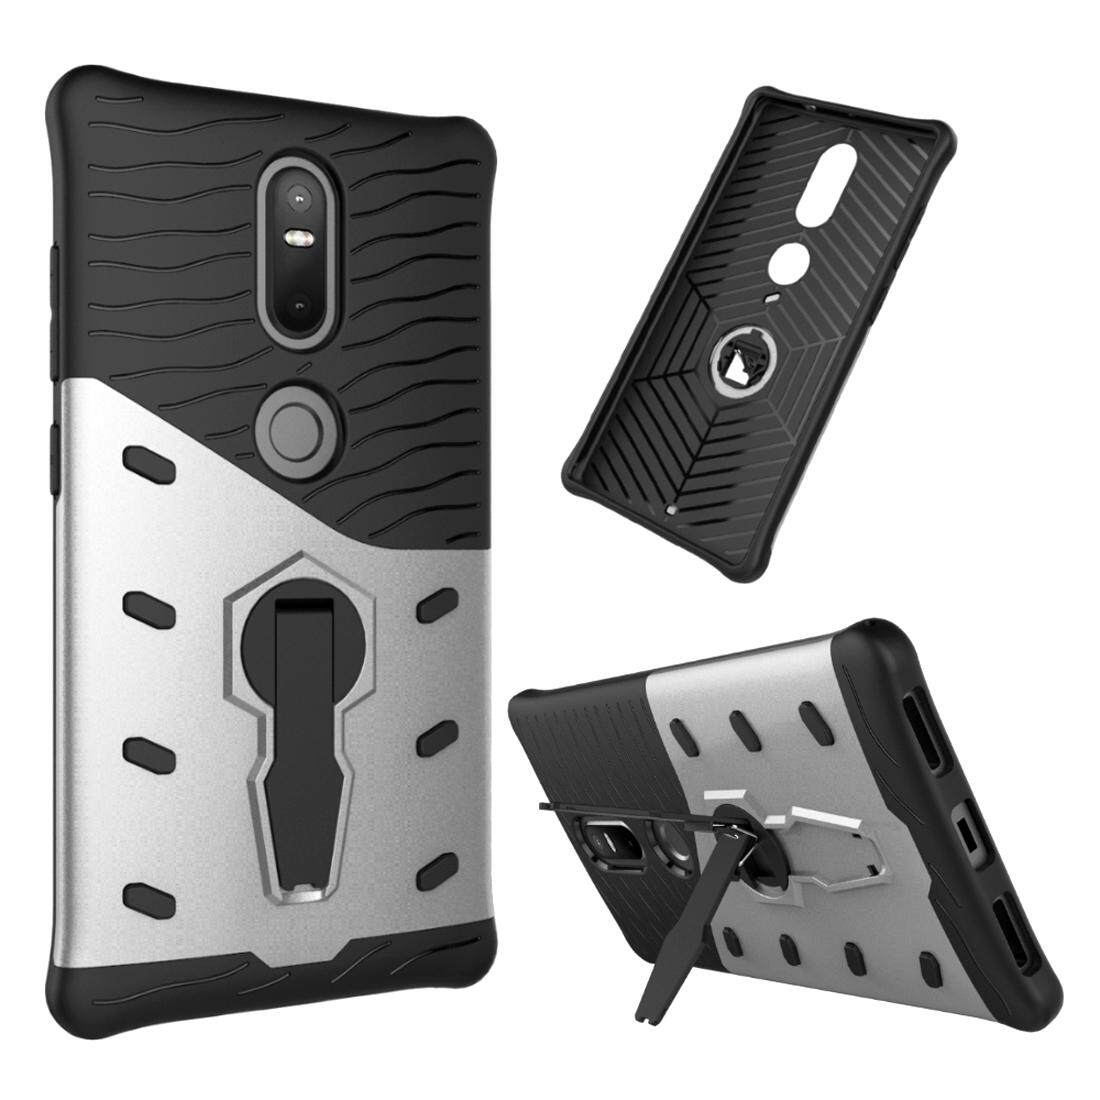 For Lenovo Phab2 Plus Shock-Resistant 360 Degree Spin Sniper Hybrid Case TPU + PC Combination Case with Holder(Silver) - intl